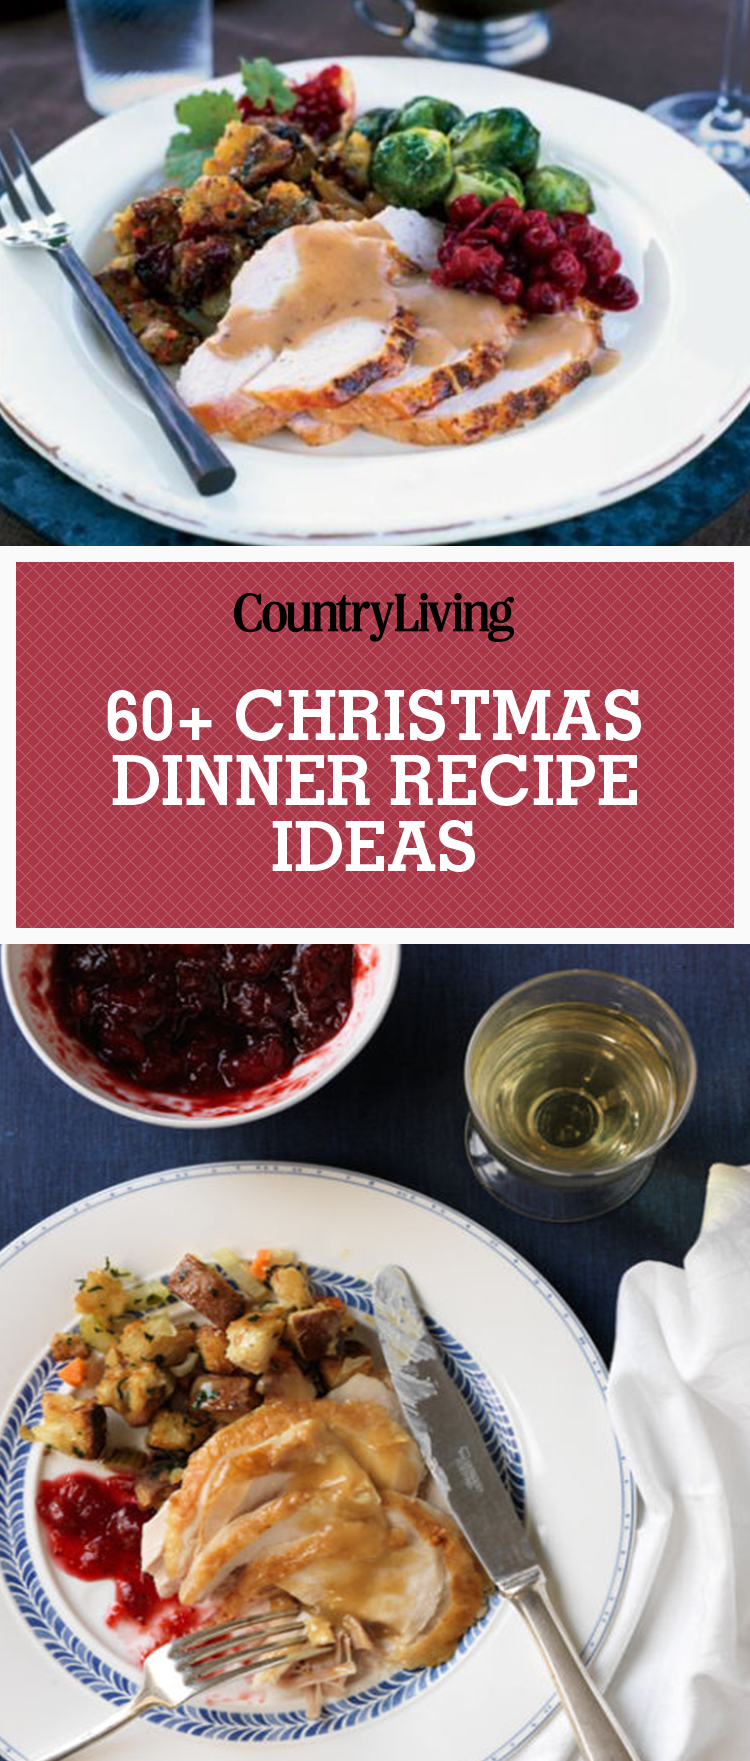 Sure-bet, no-stress comfort food thats easy to make and impressive to serve: Thats our idea of a great Christmas dinner!